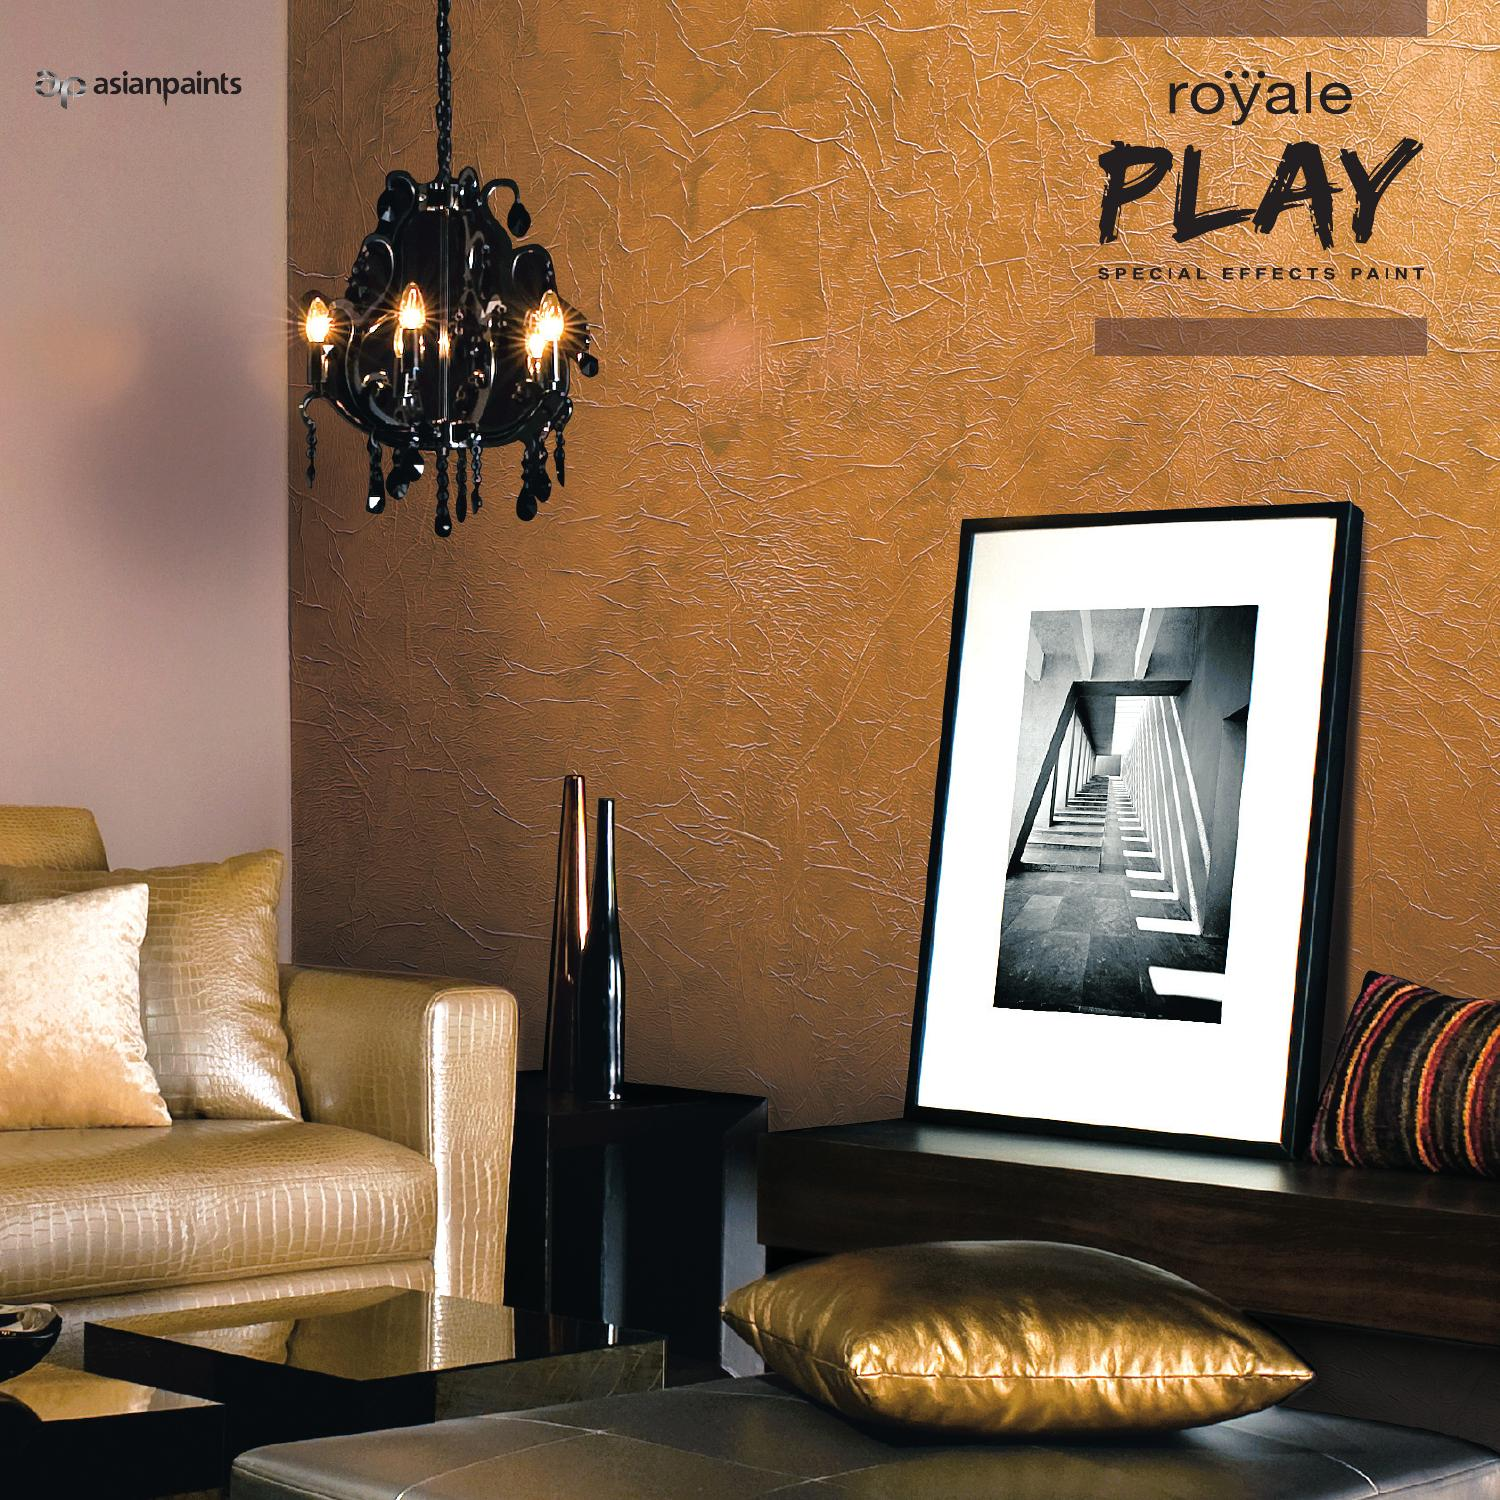 Royale Play Metalic By Asian Paints Limited Issuu